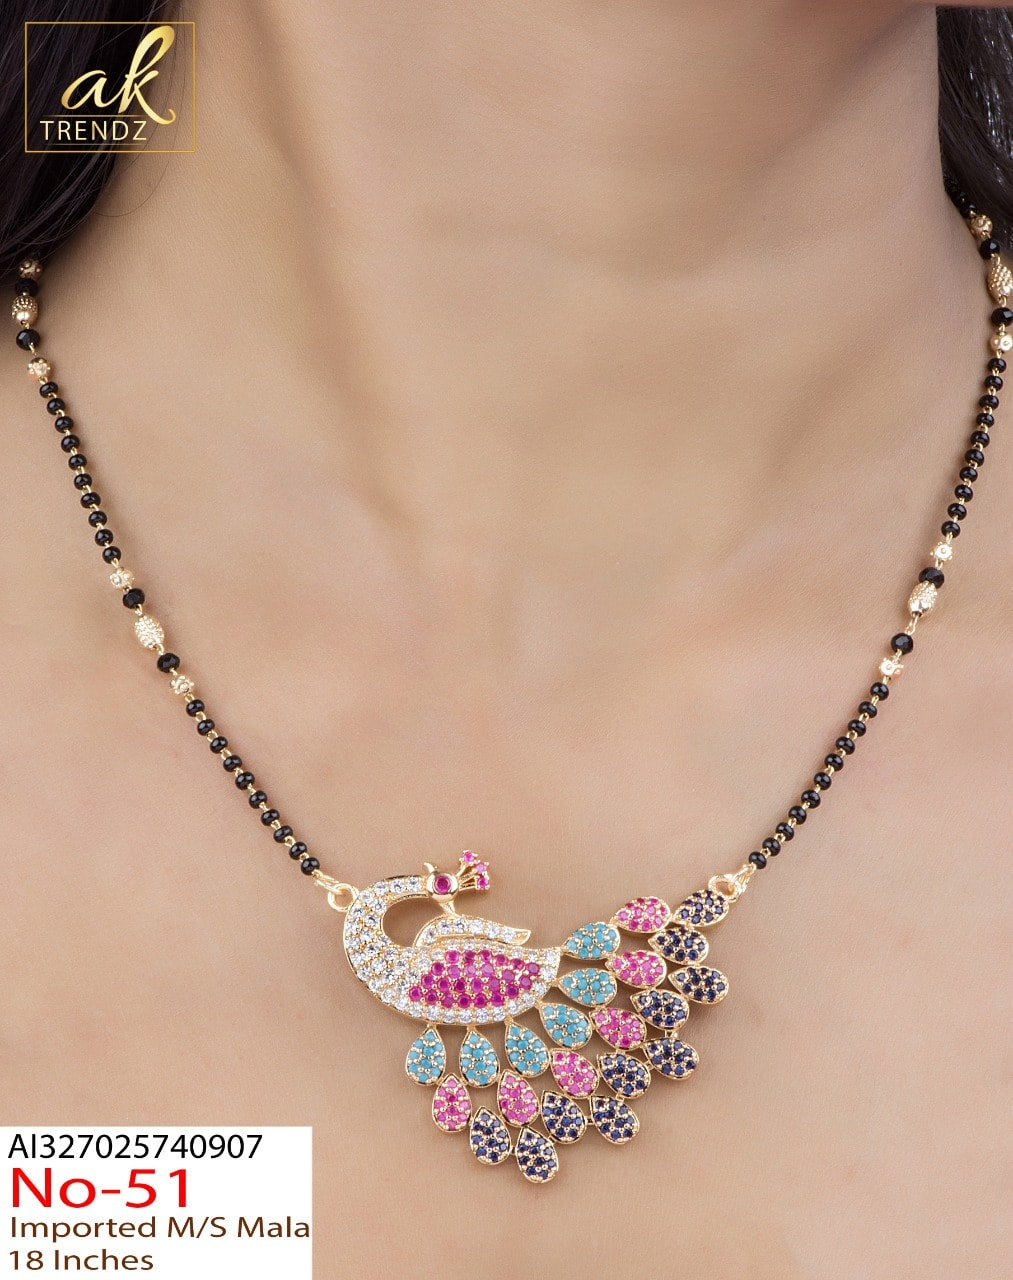 Beautiful one gram gold black bead necklace with peacock pendant.